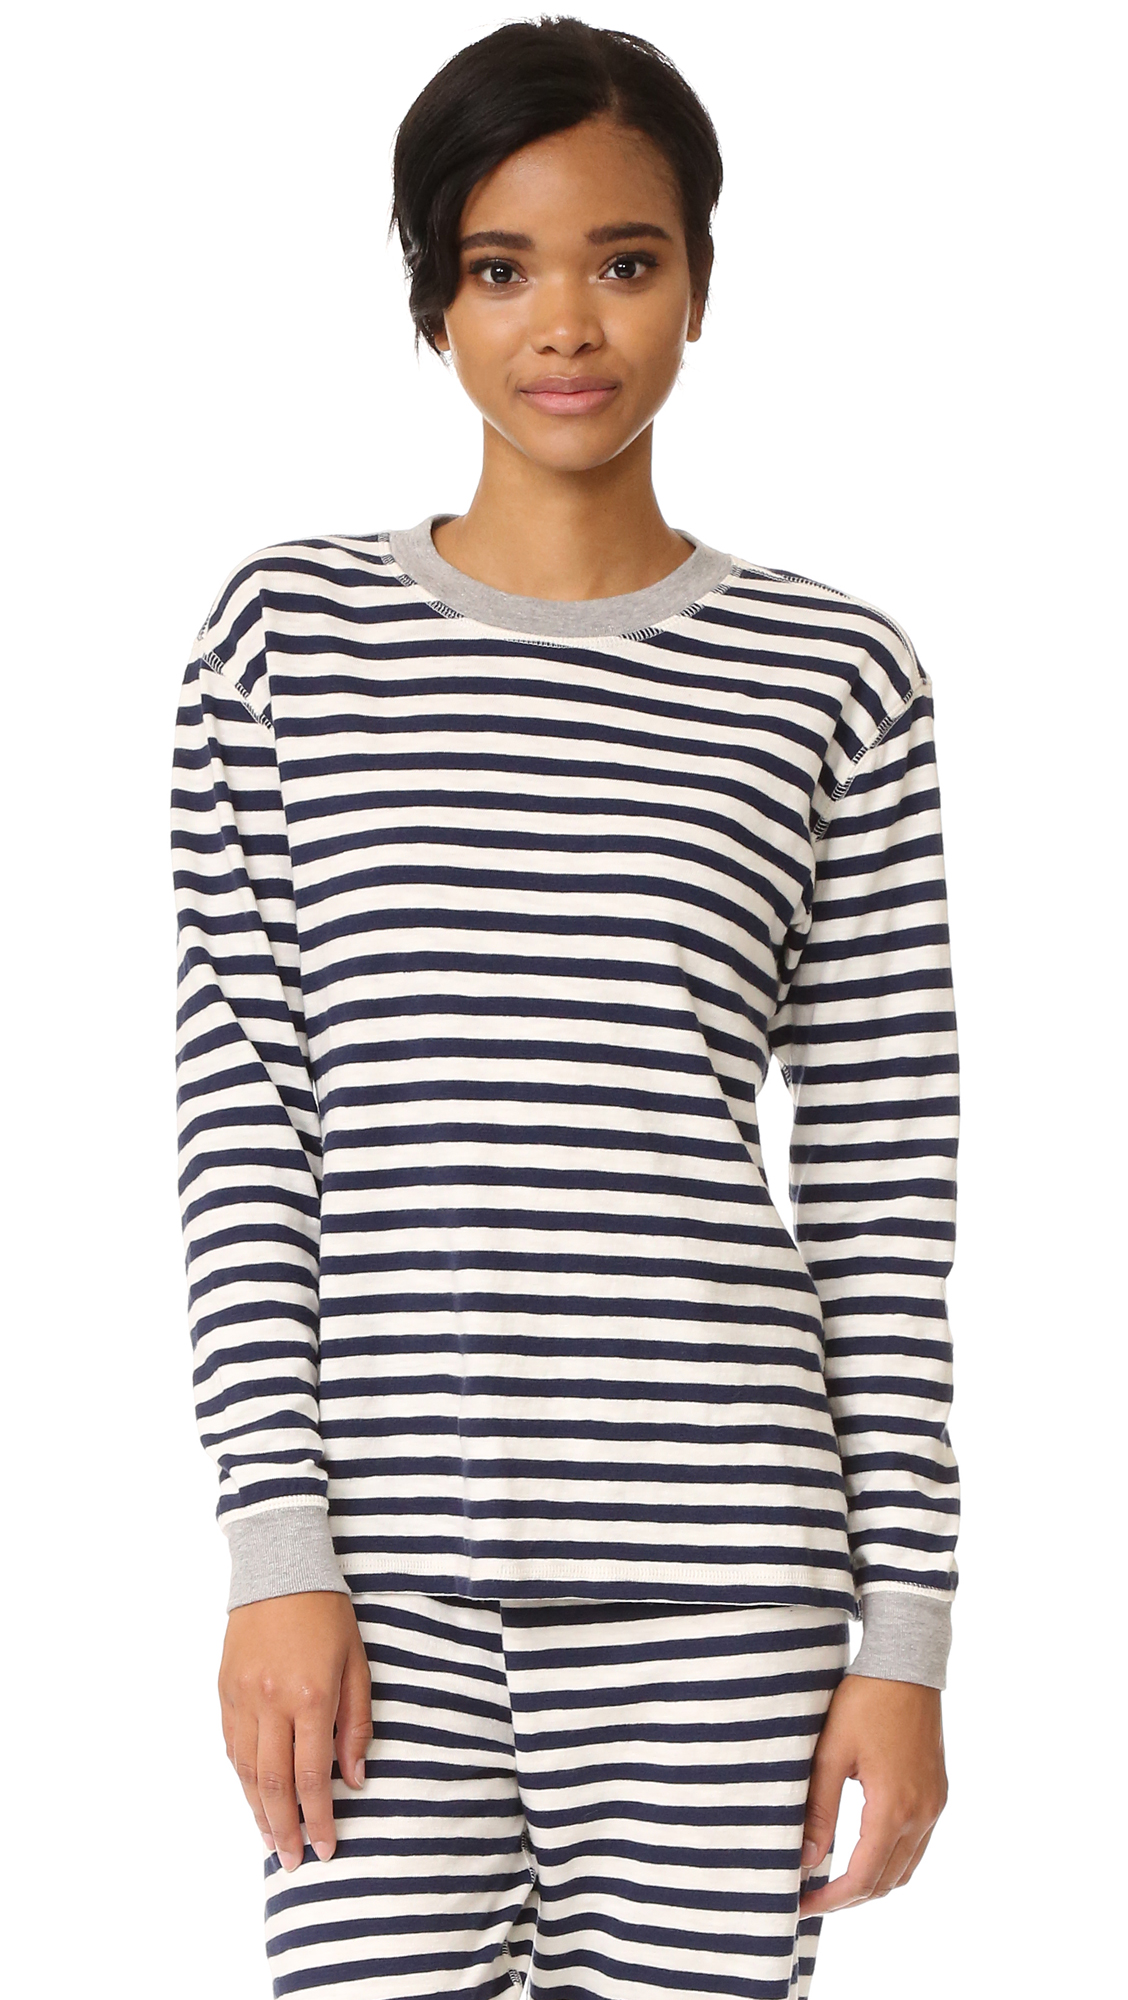 Sleepy Jones Helen Pajama Top - Navy